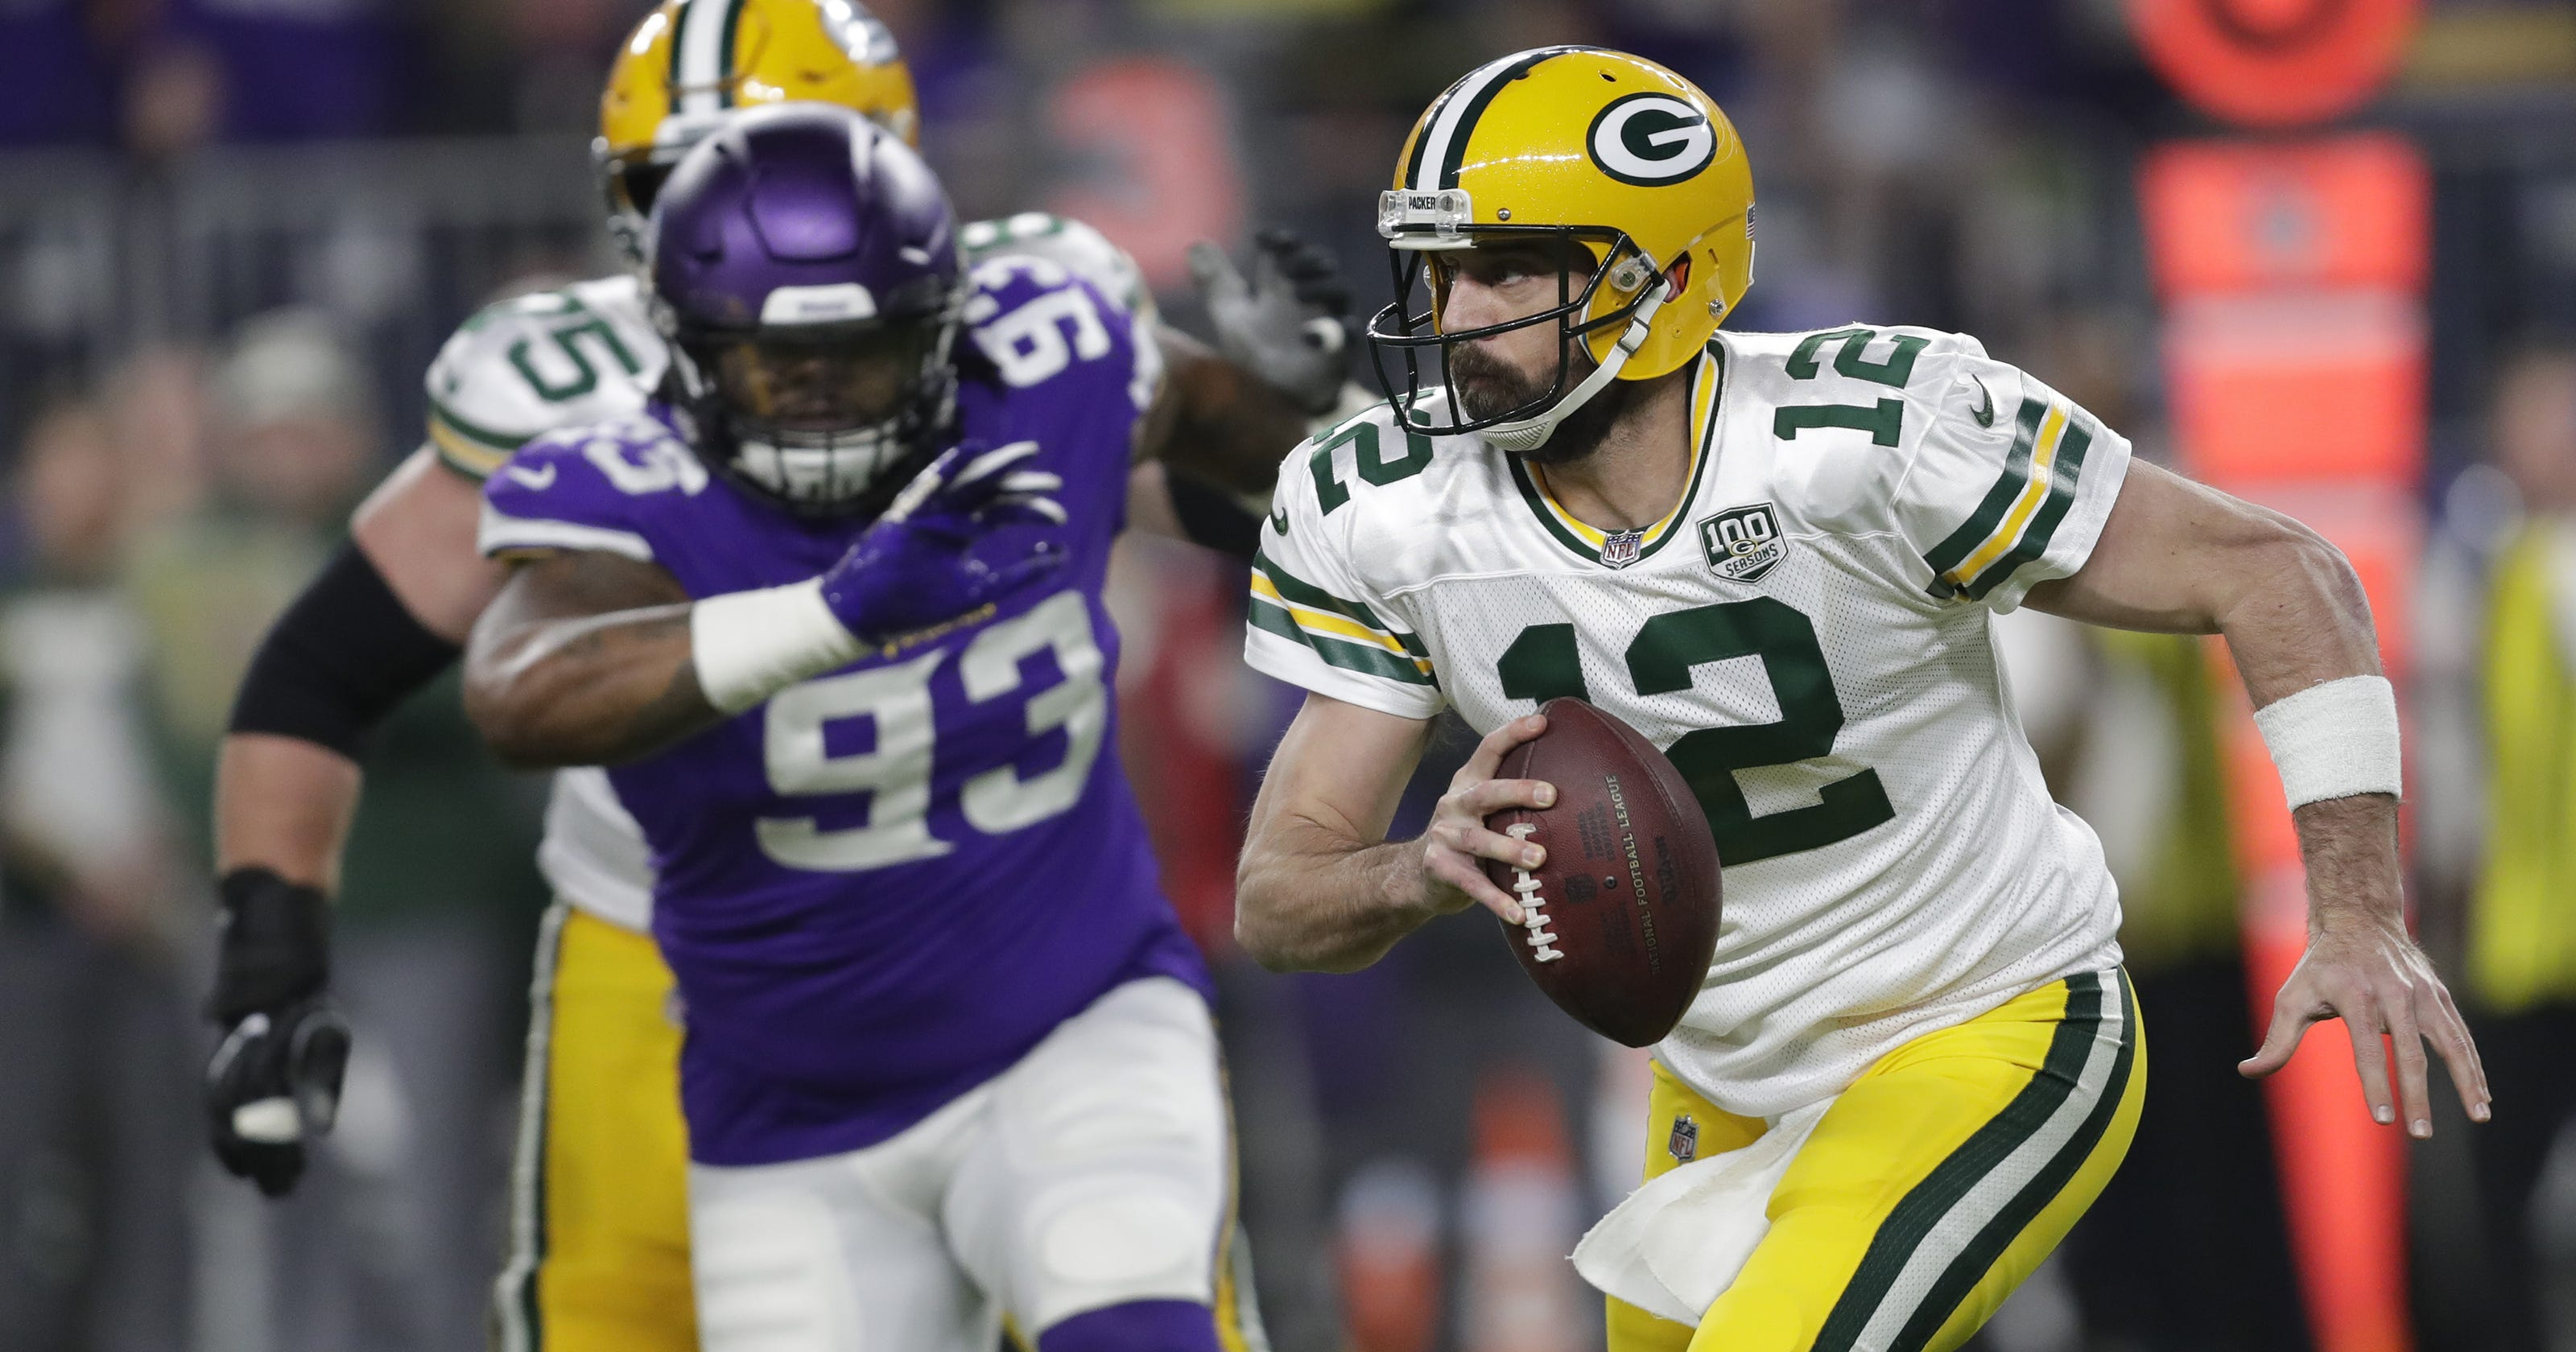 c5616035 Packers' offense ignoring open receivers in pursuit of big plays